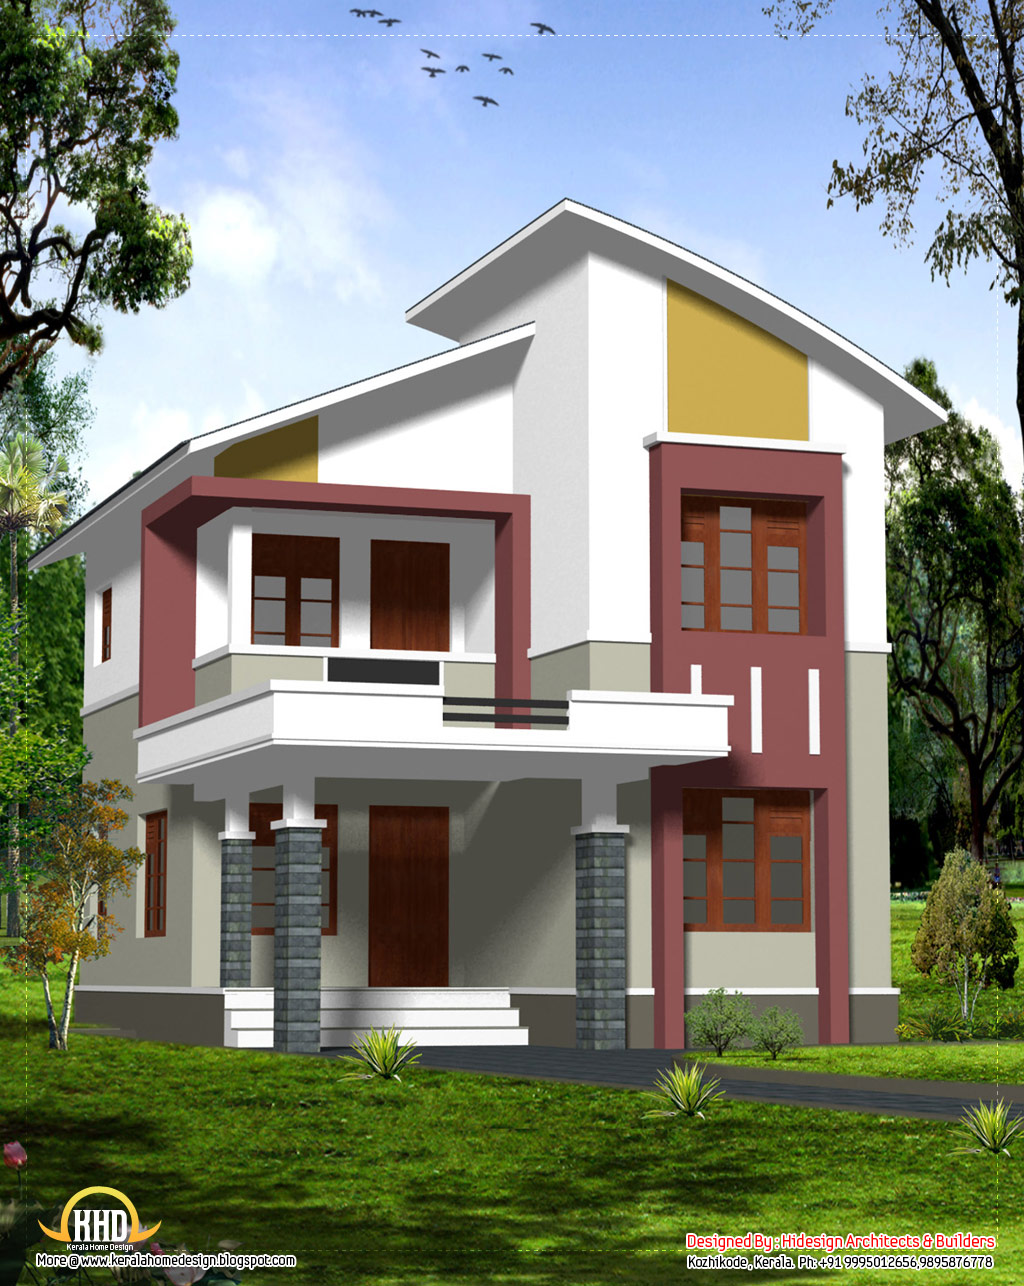 Budget home design 2140 sq ft kerala home design and for Homes on a budget